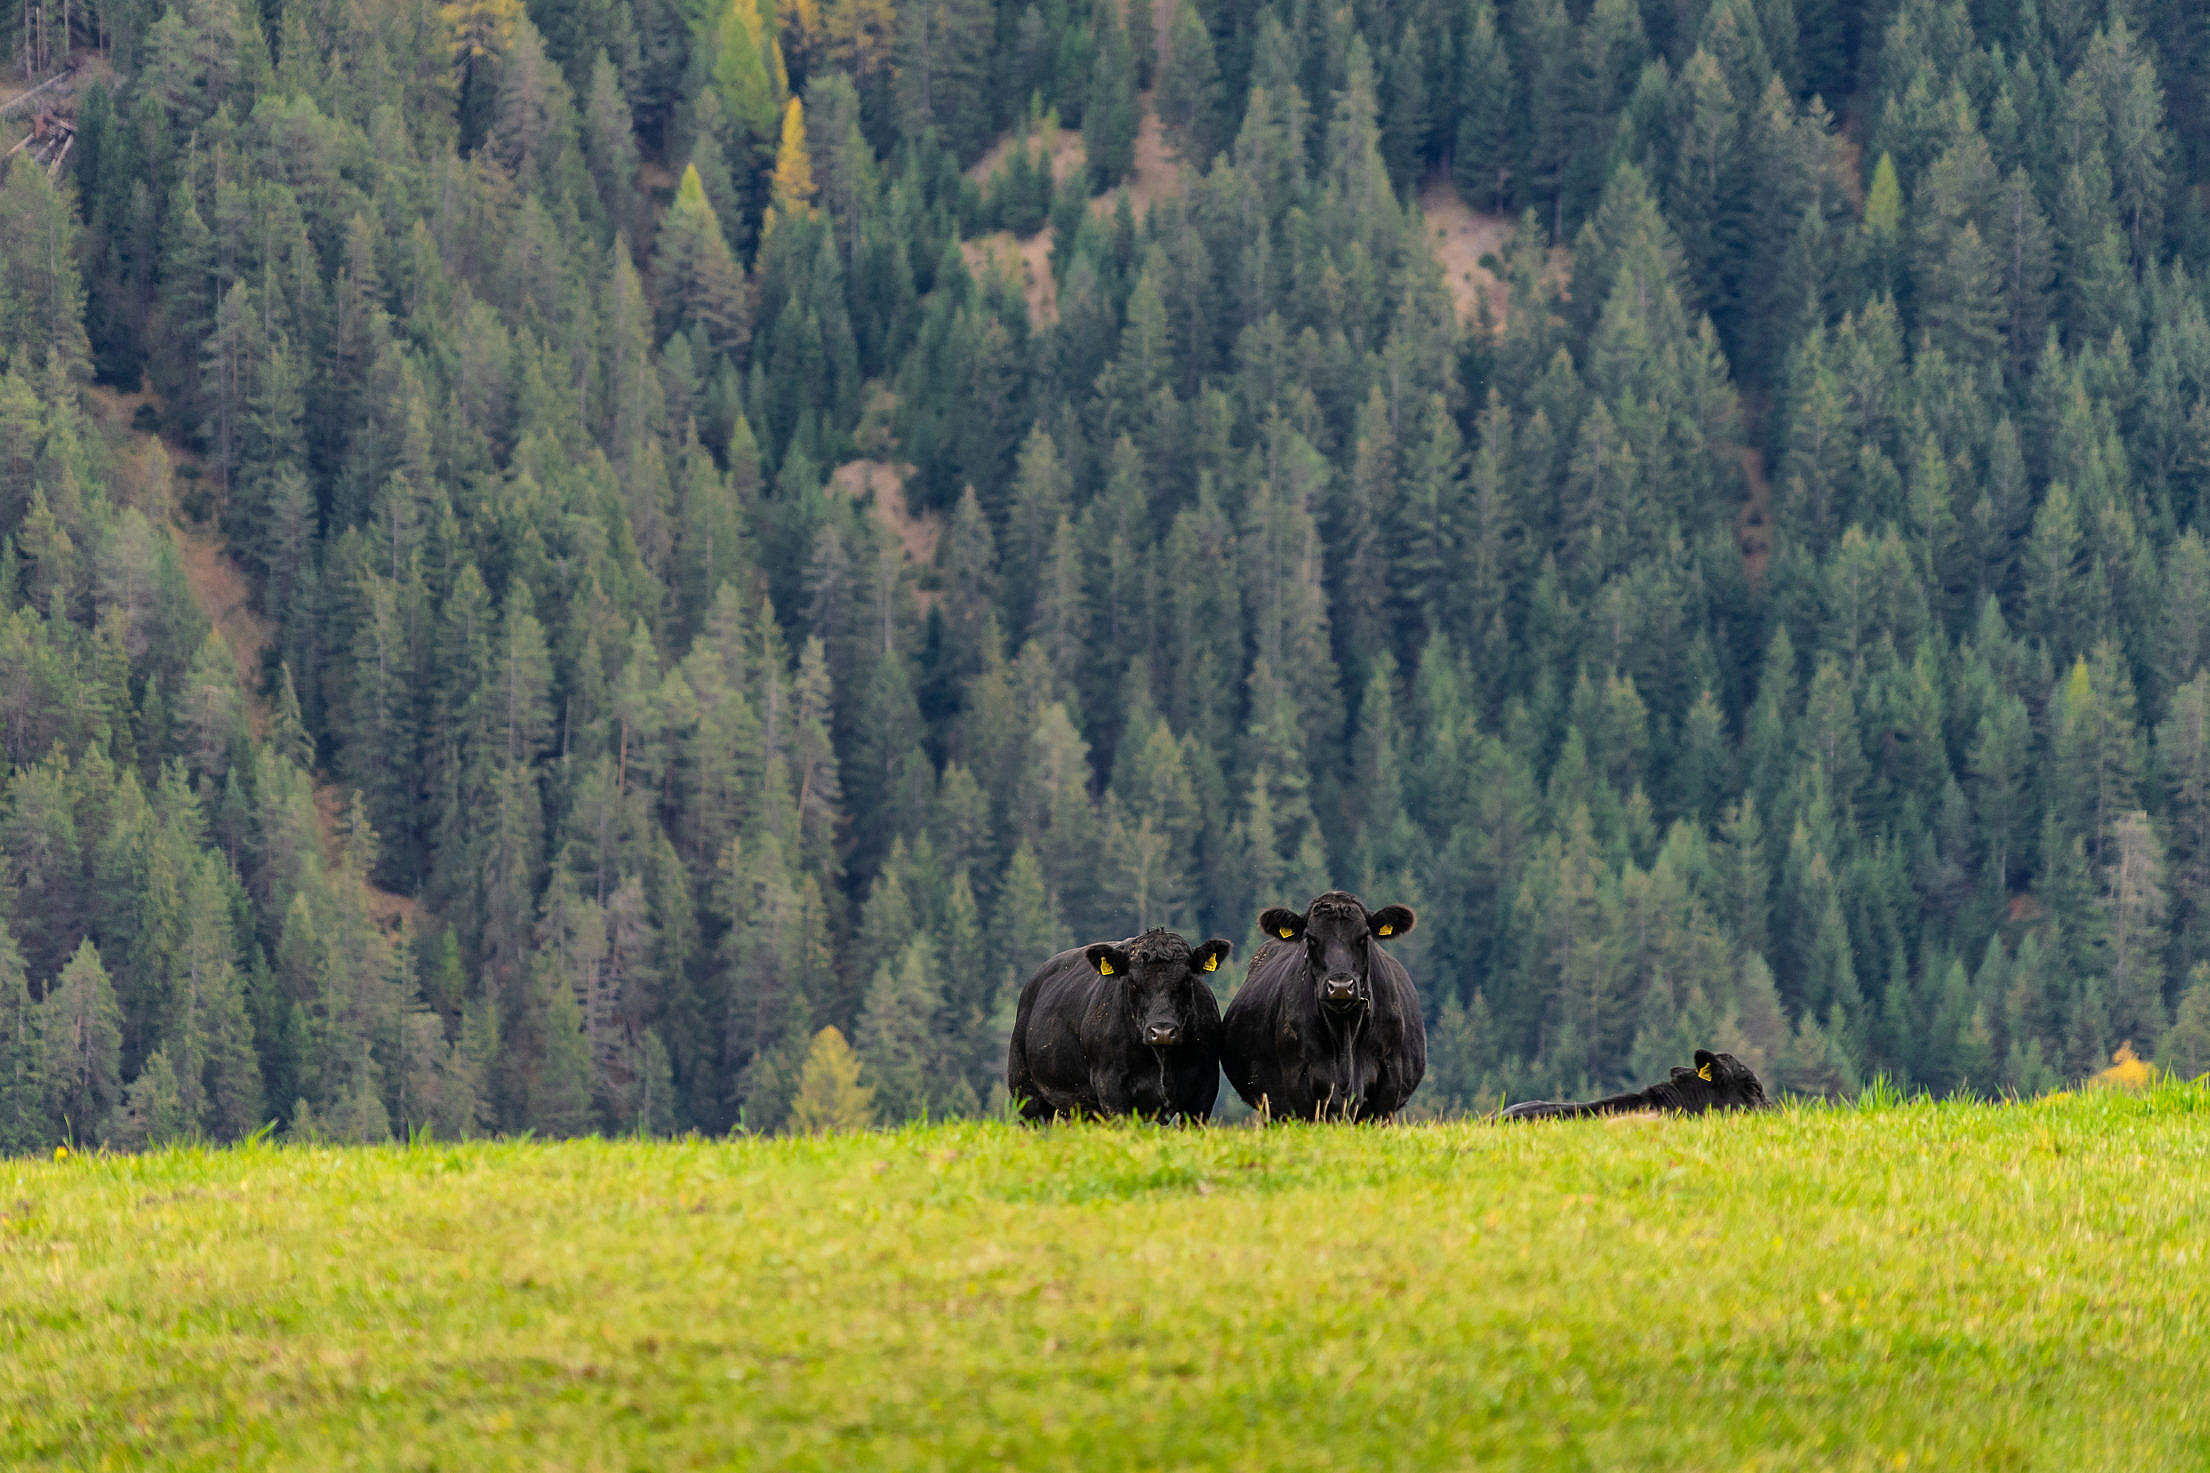 Black Cows Looking Into Camera Free Stock Photo